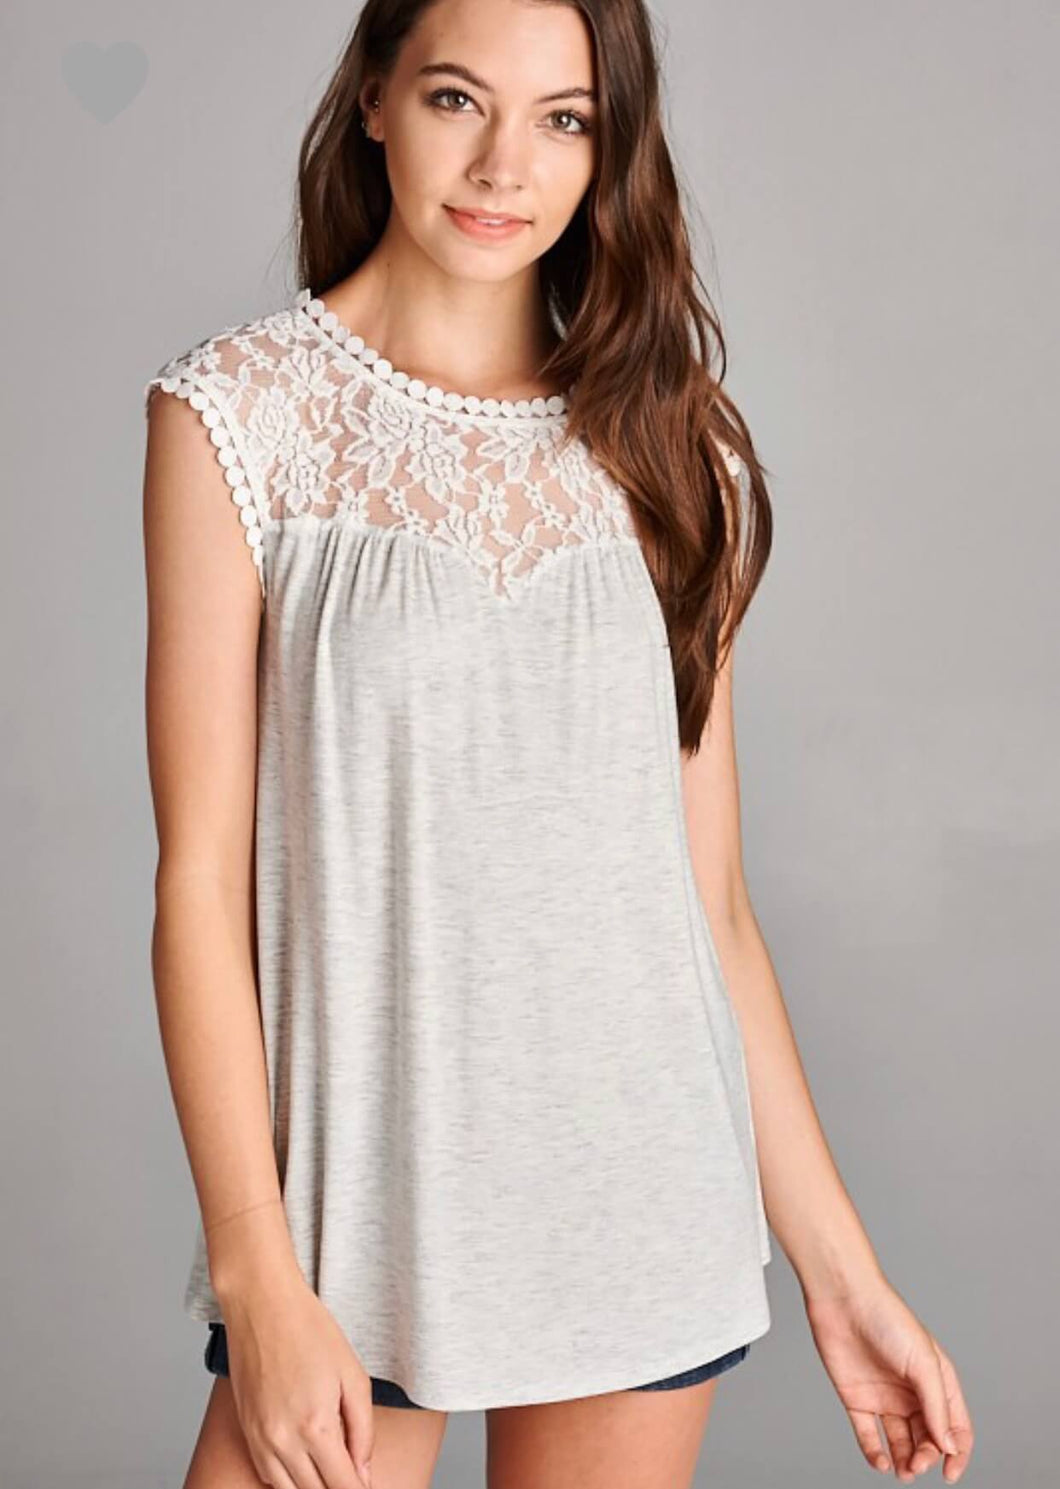 Lace yolk grey tank top